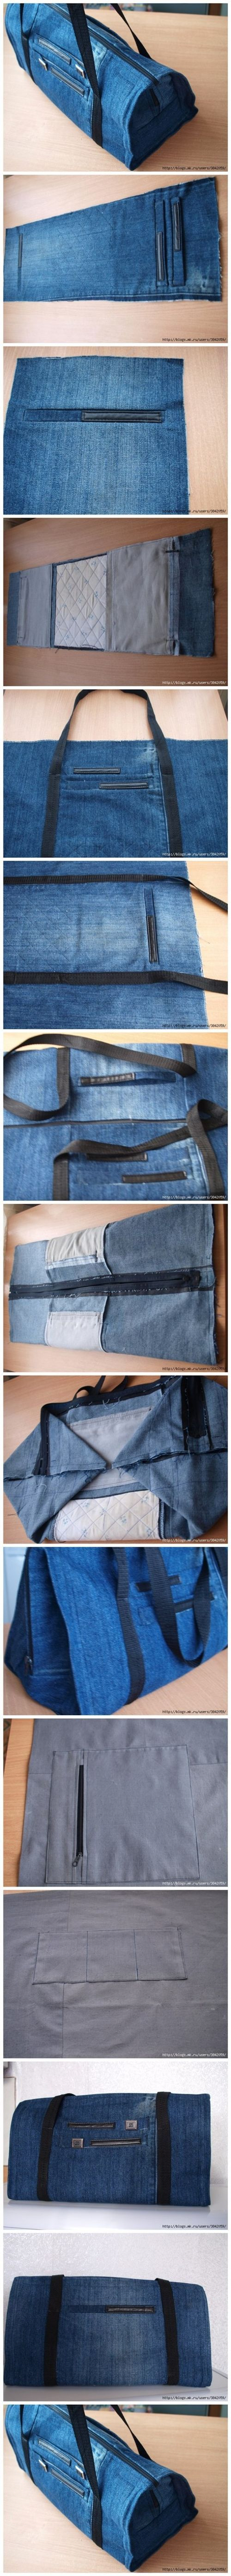 How to sew DIY handbags with recycled jeans step by step tutorial instructions / How To Instructions